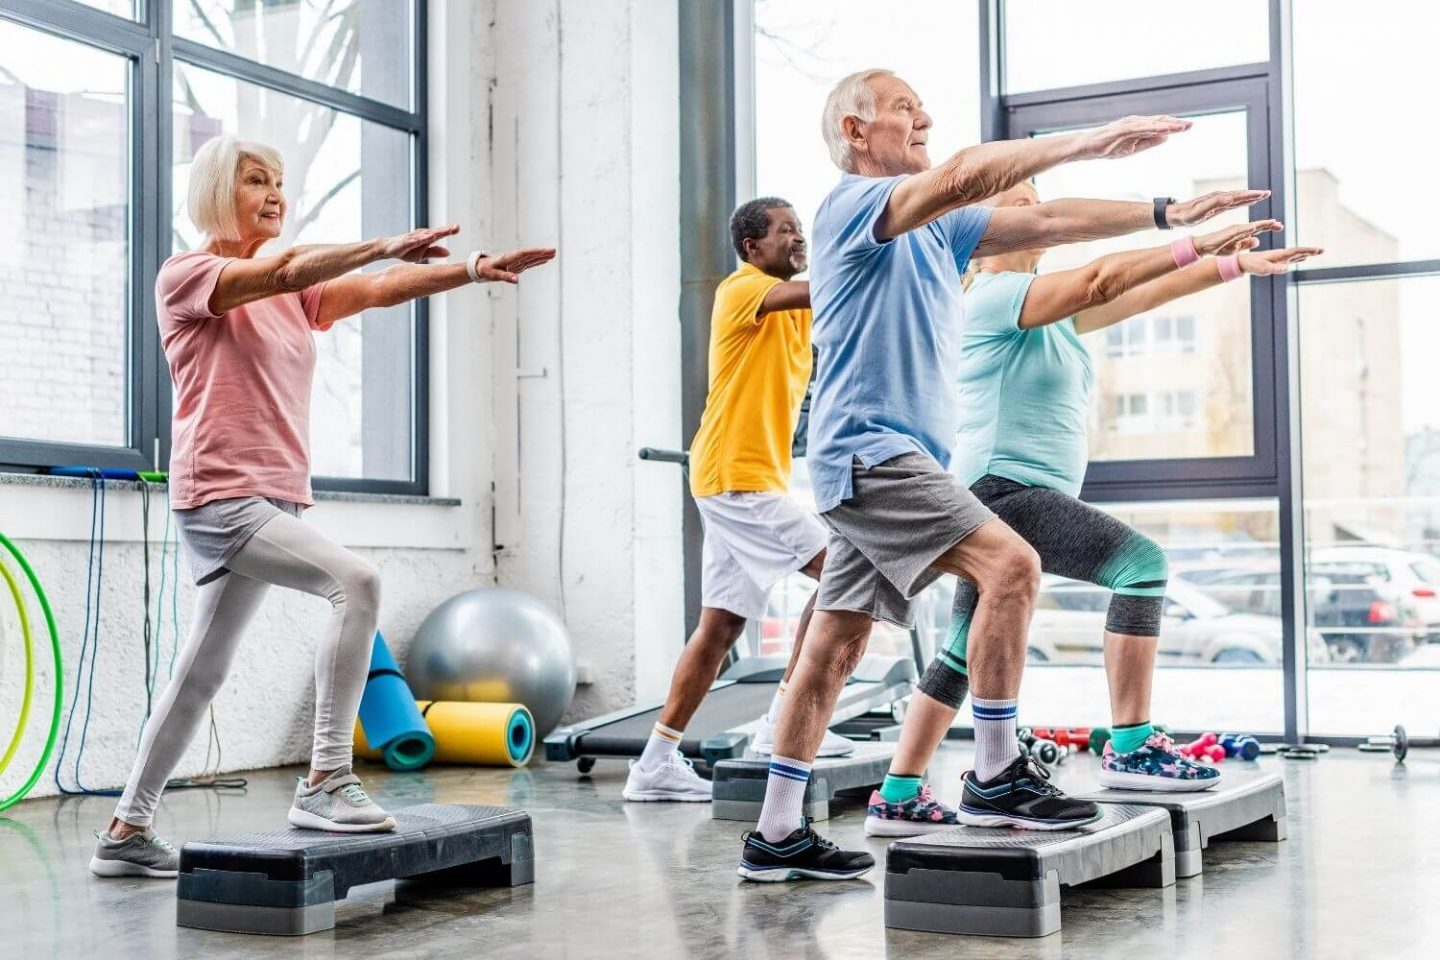 4 older individuals partaking in a step exercise class with hands raised in front of them as they step their right feet onto the step.